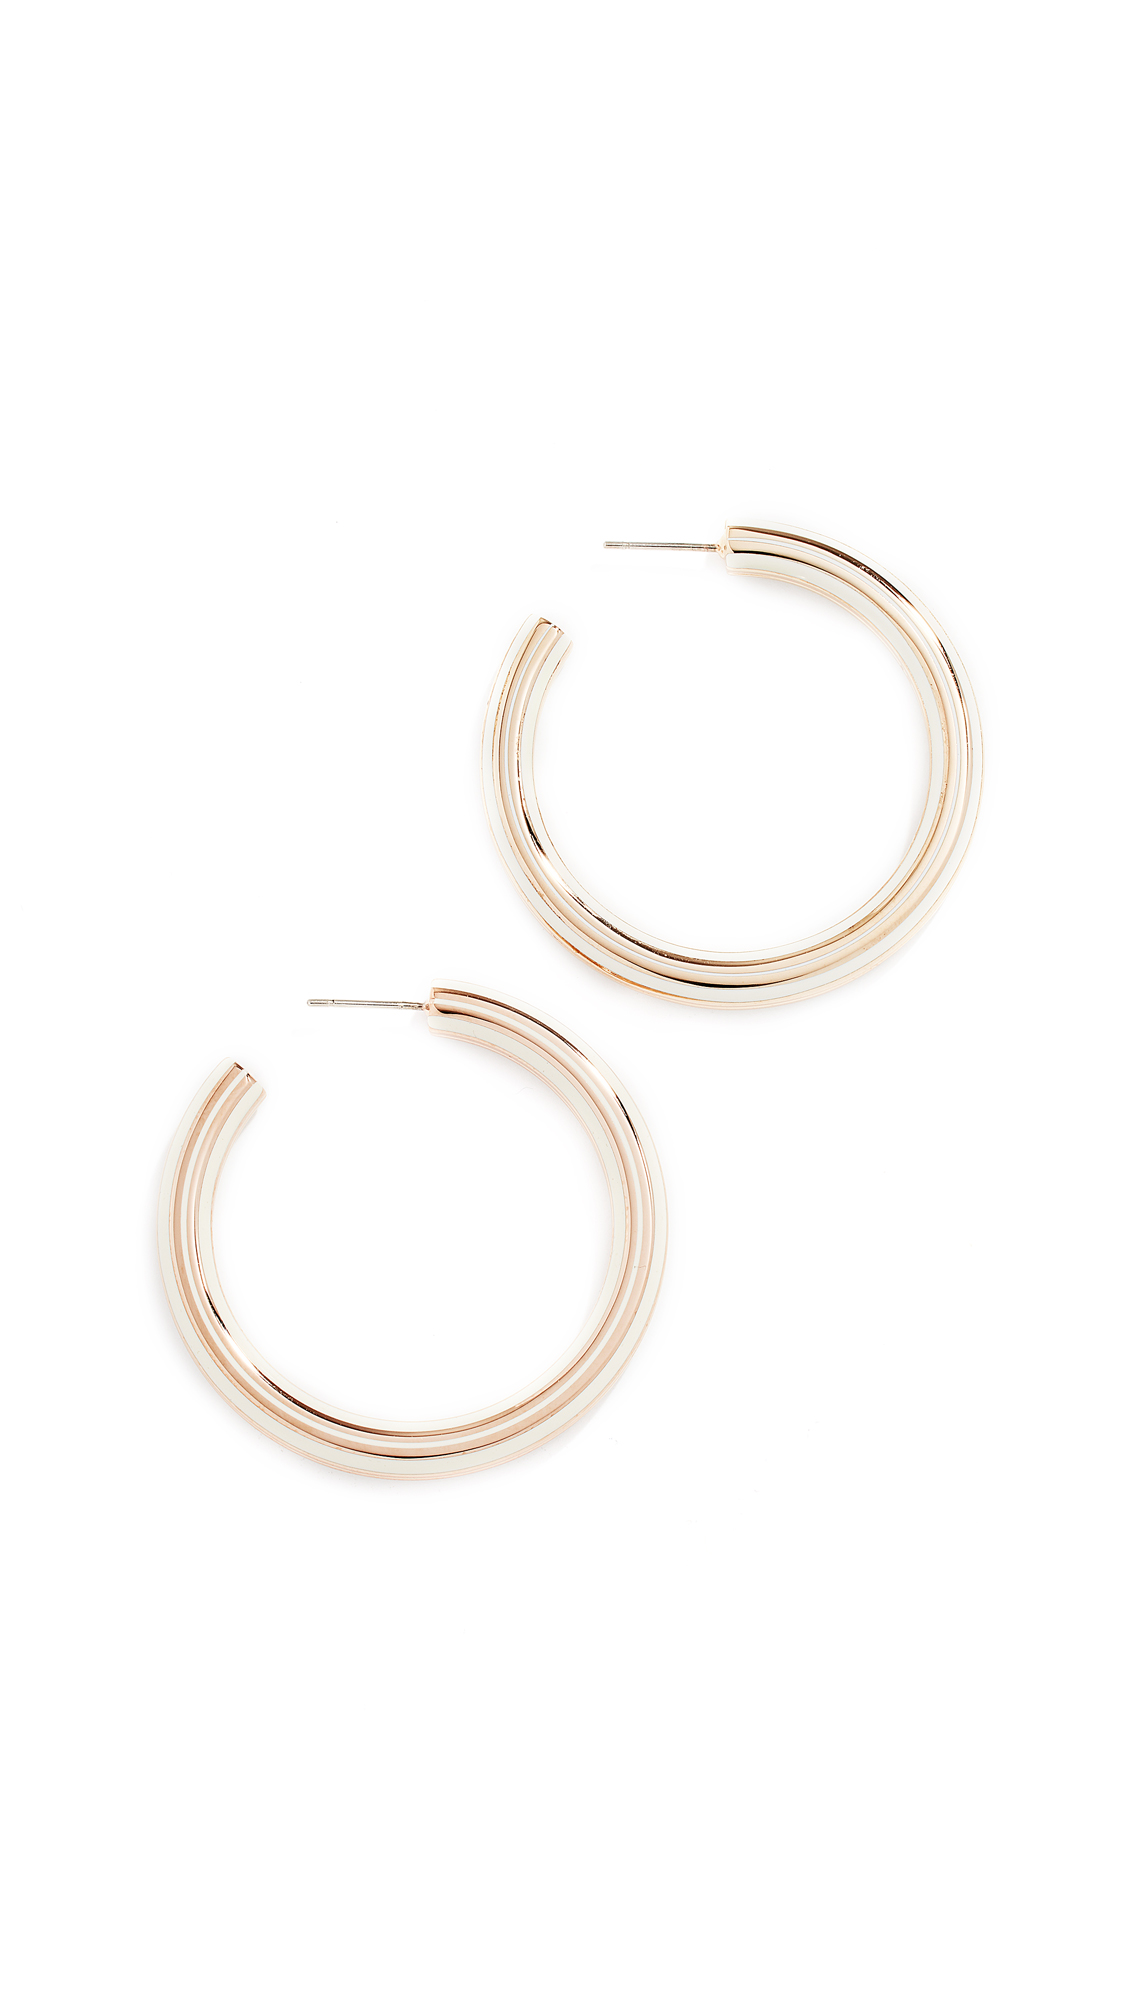 Tory Burch T-Stretch Hoop Earrings - Rose Gold/New Ivory